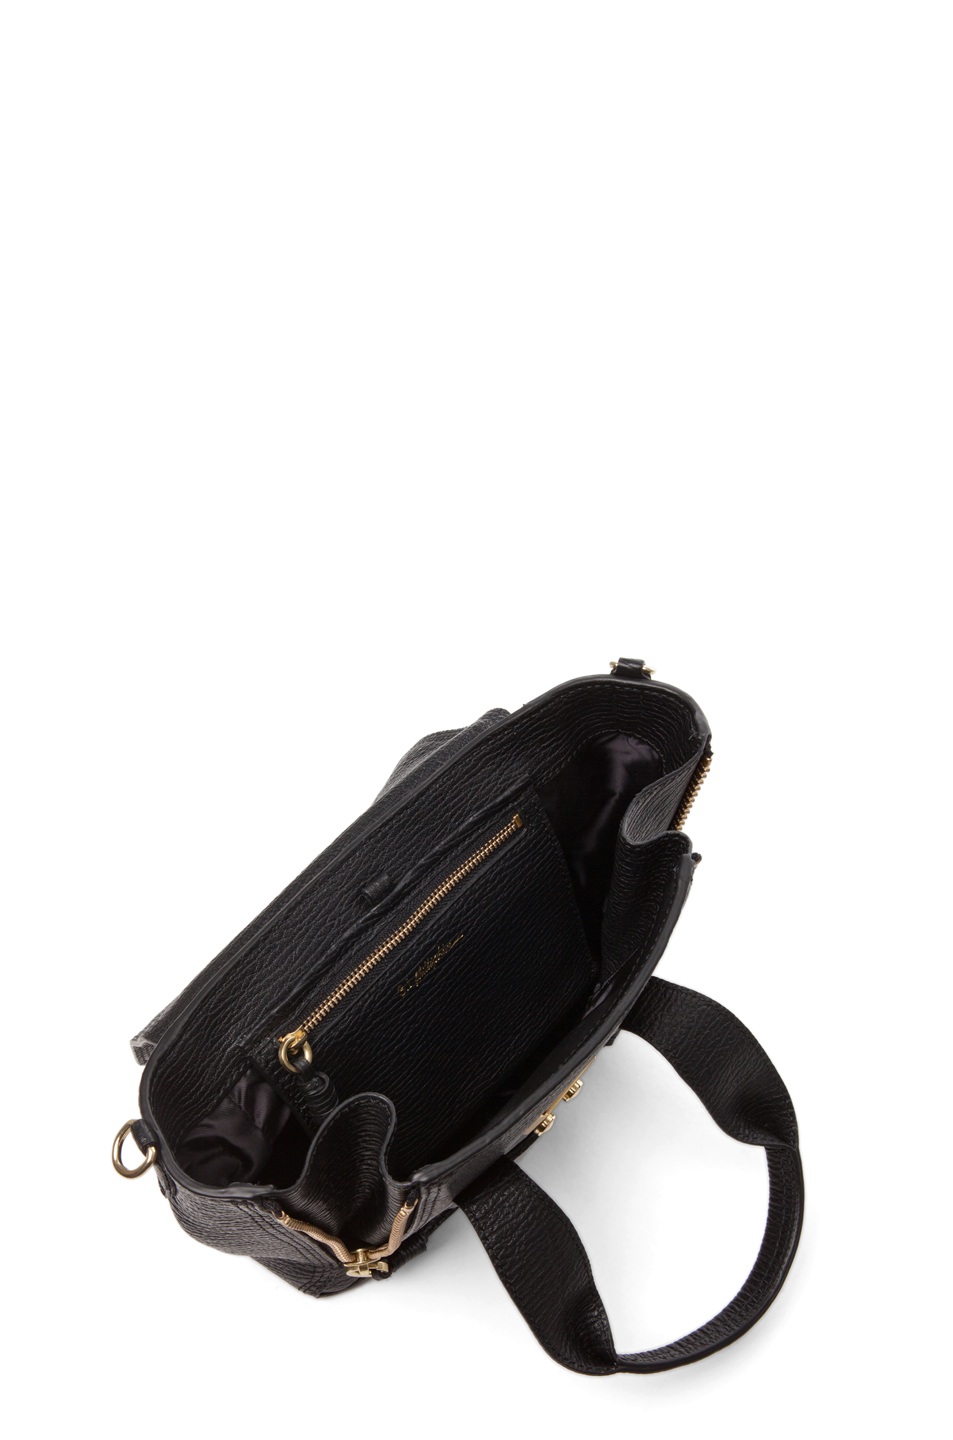 3.1 phillip lim | Mini Pashli Satchel in Black